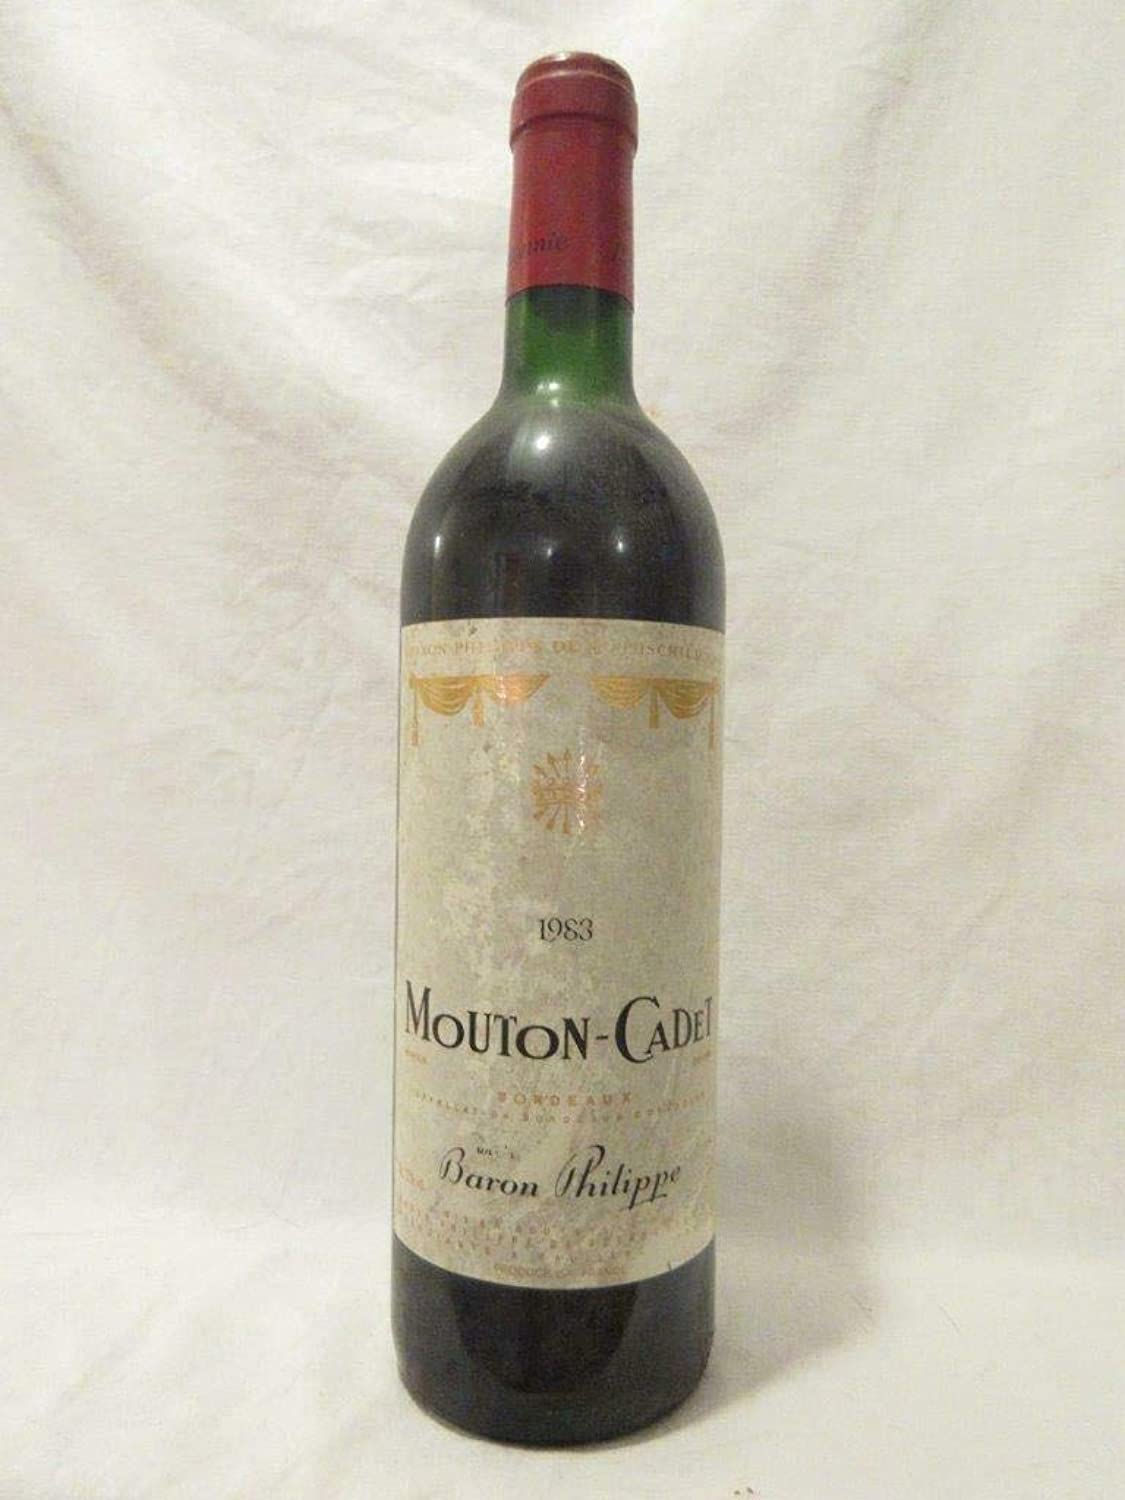 Bordeaux mouton-cadet rot 1983 - bordeaux france